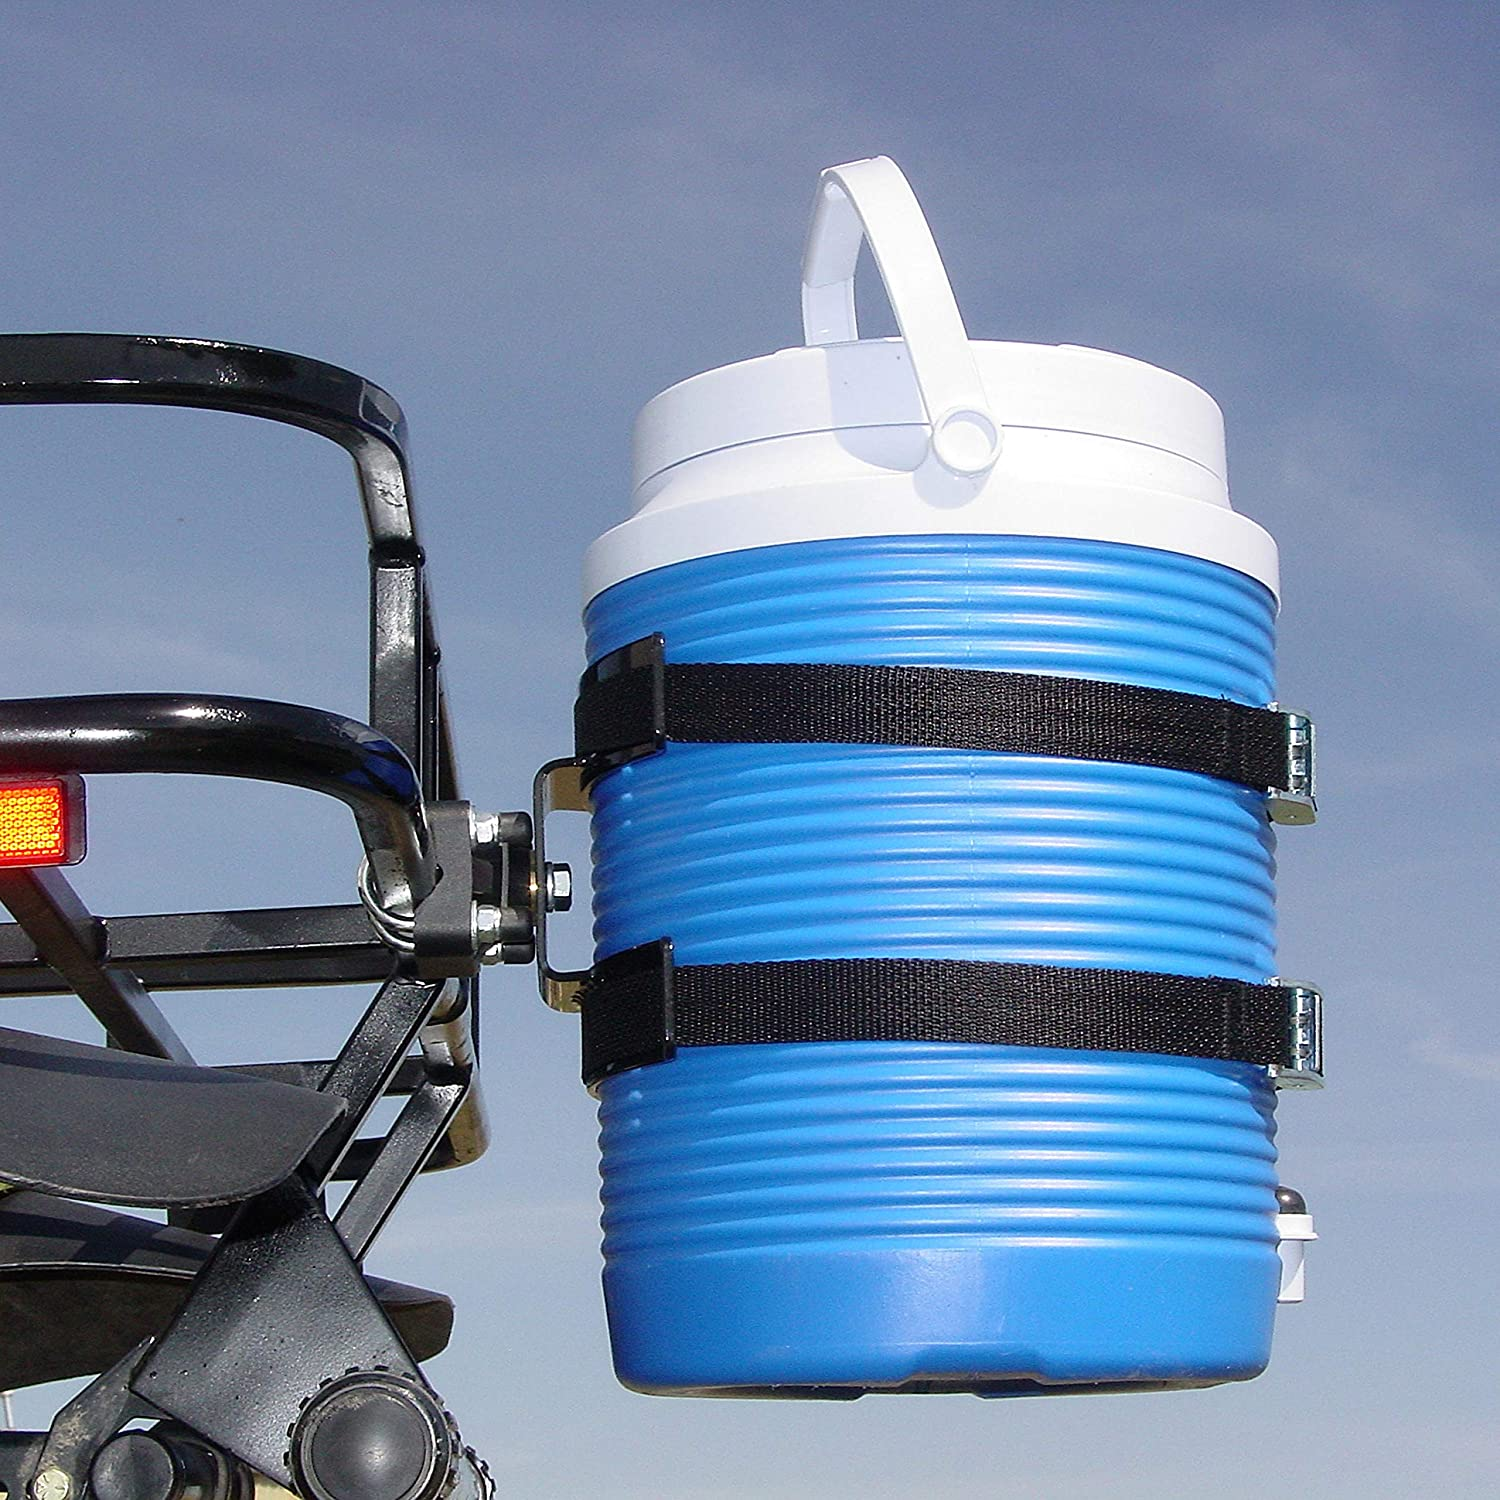 BB1X All Rite Products Bucket Binder Crossover